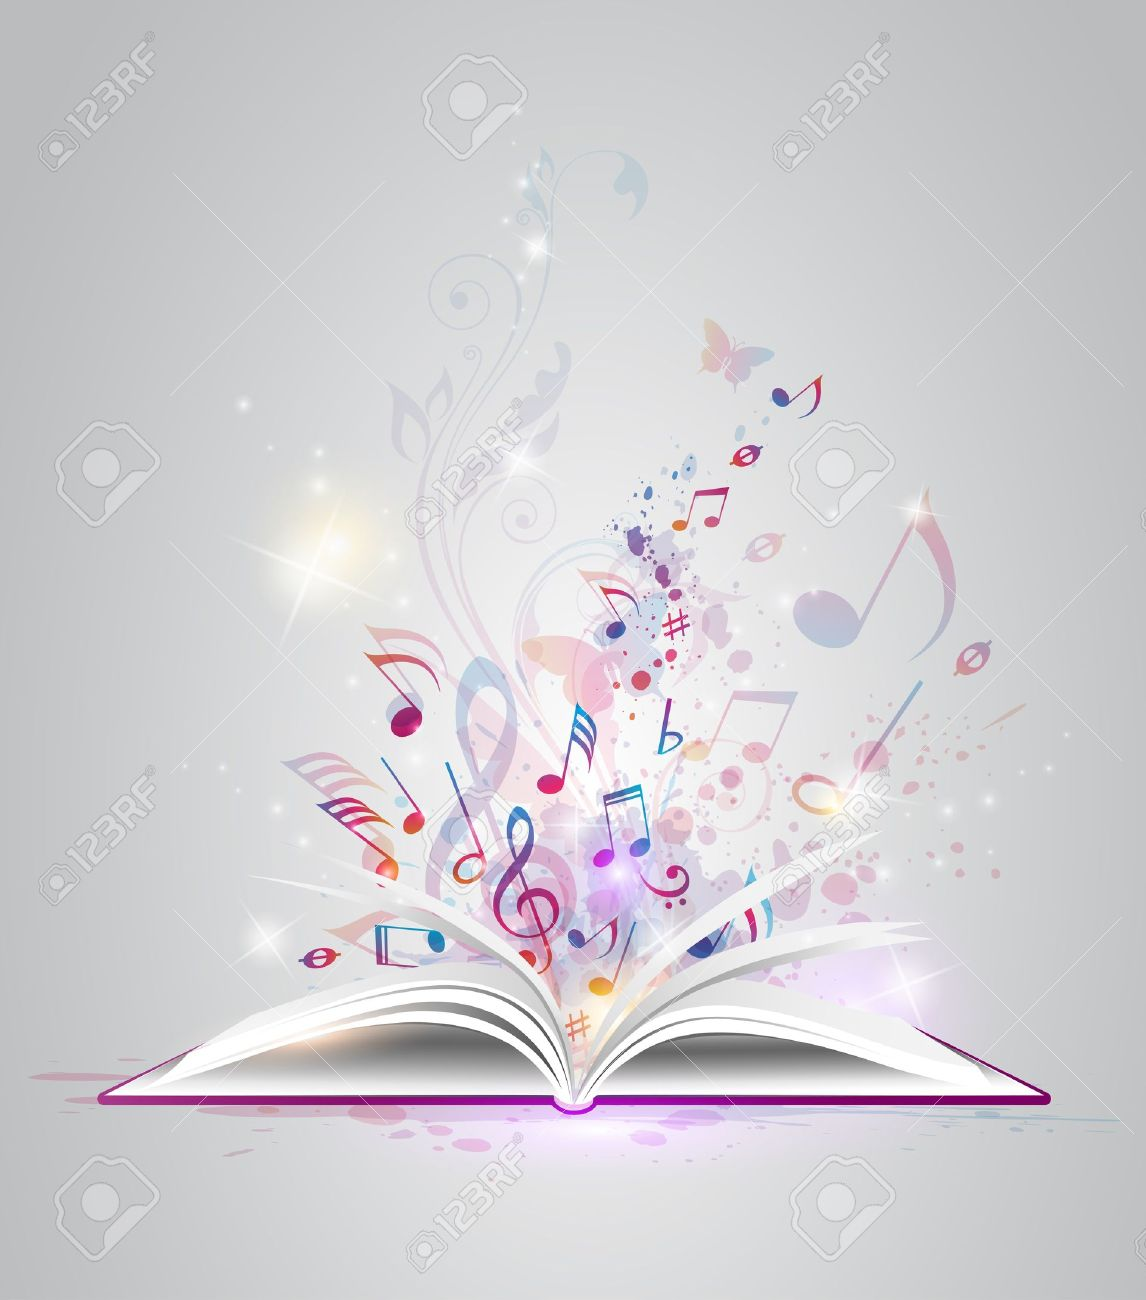 Vector abstract background with open book and notes Stock Vector - 19981546